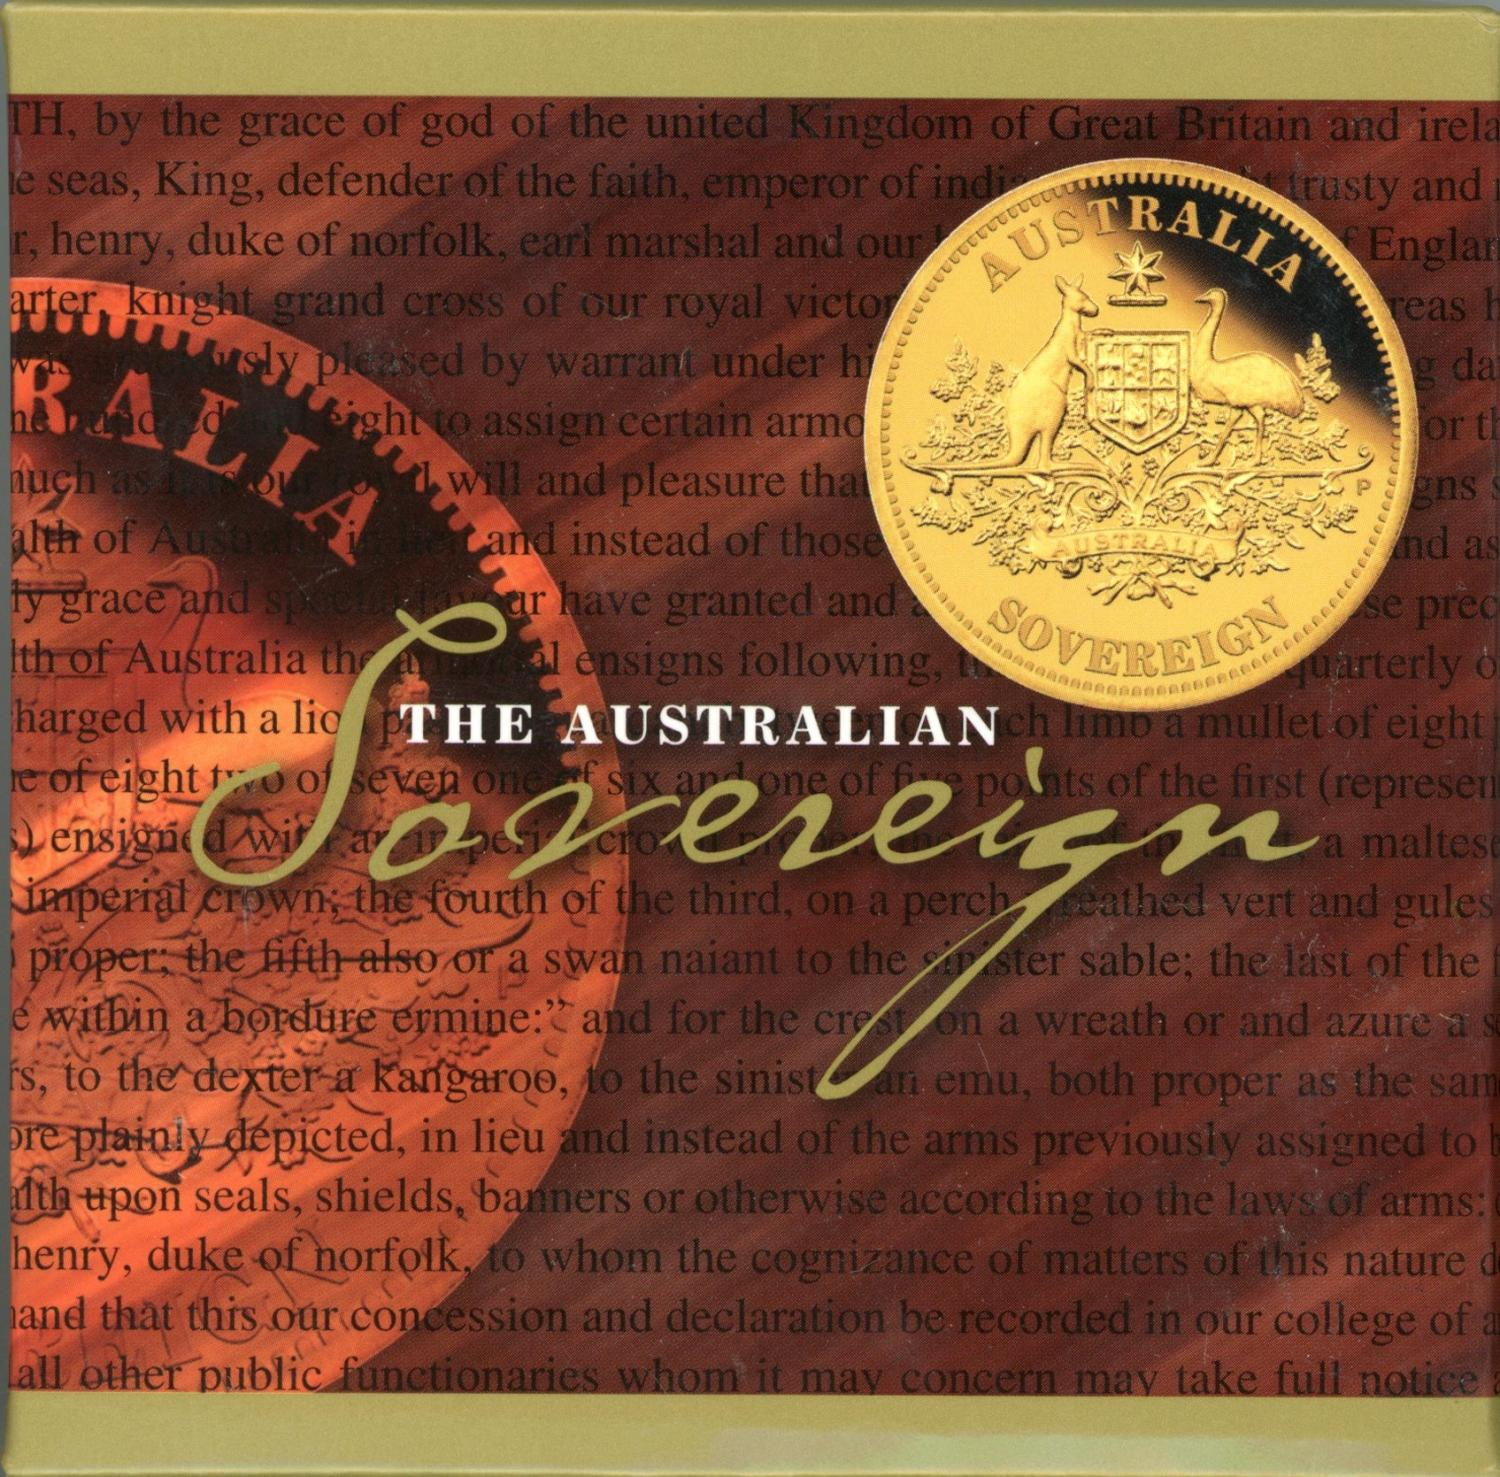 Thumbnail for 2011 Australian Perth Mint Proof Gold Sovereign